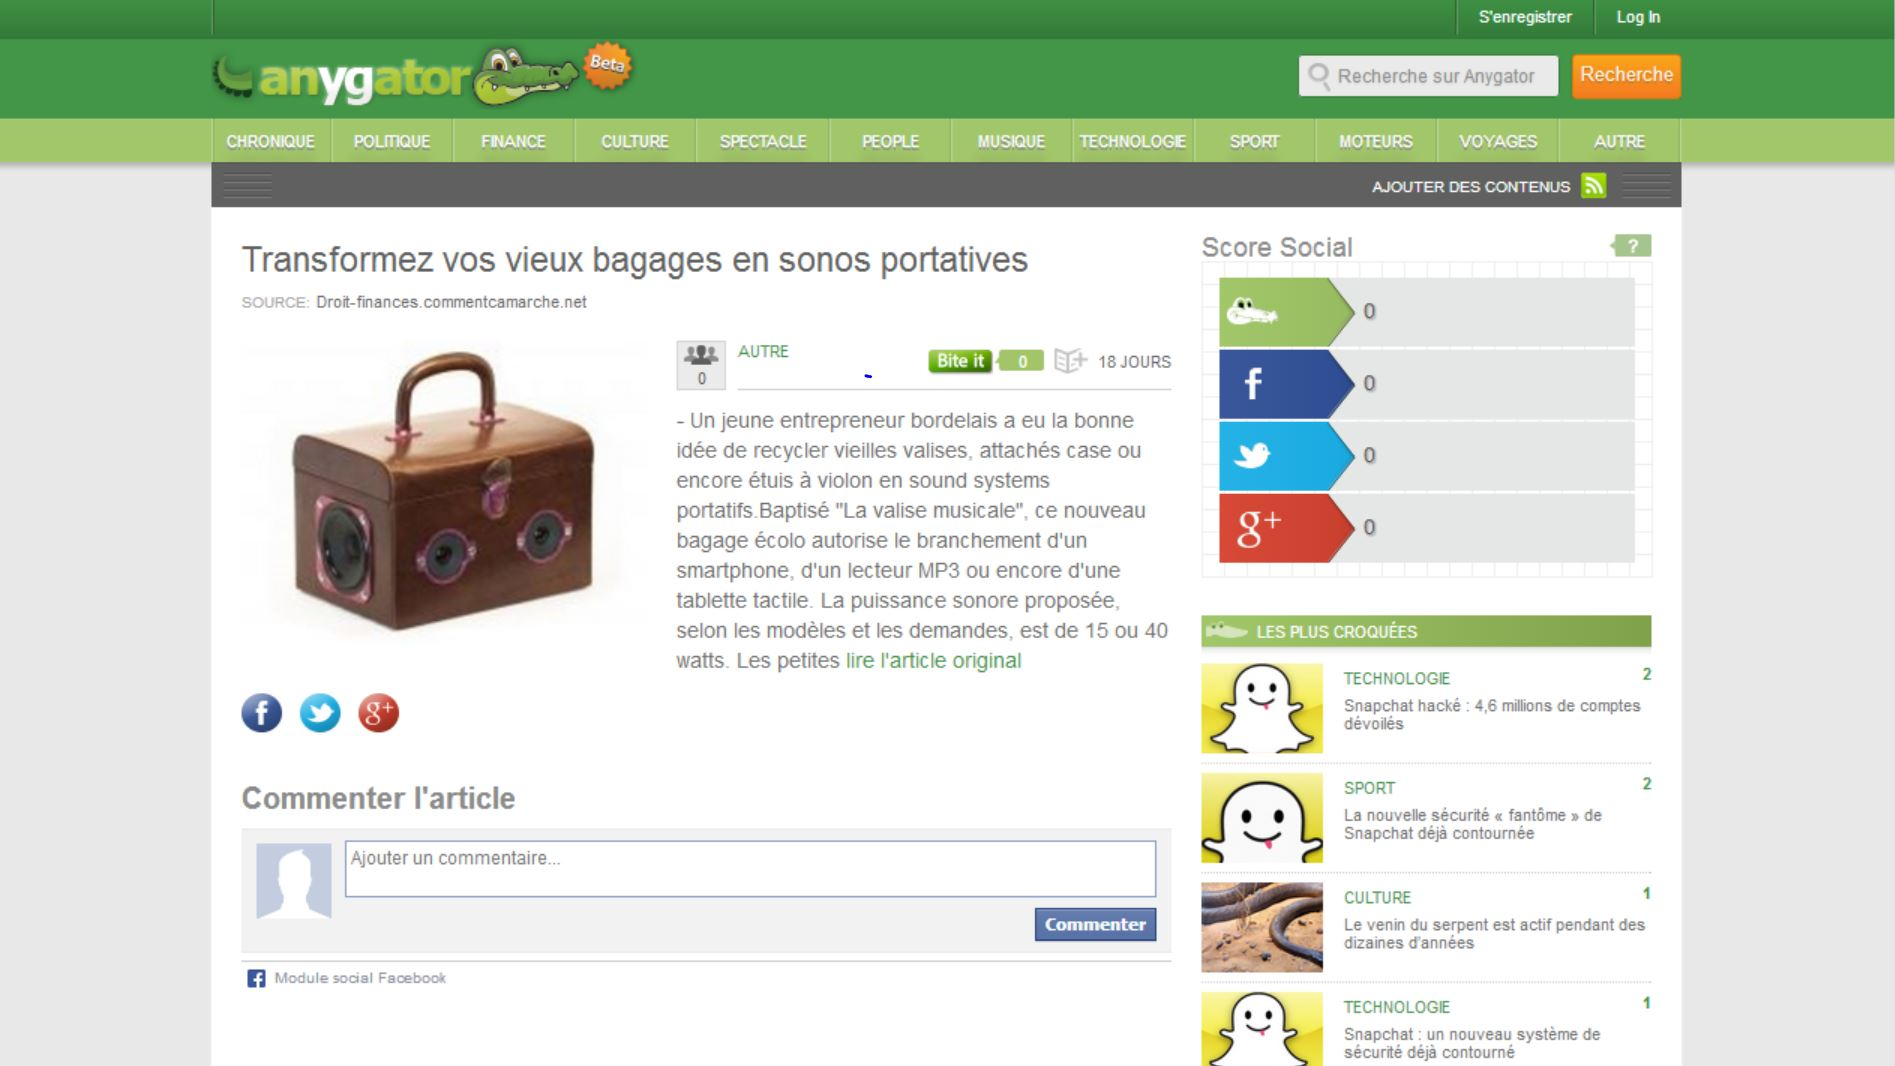 valise-musicale_article_anygator.com